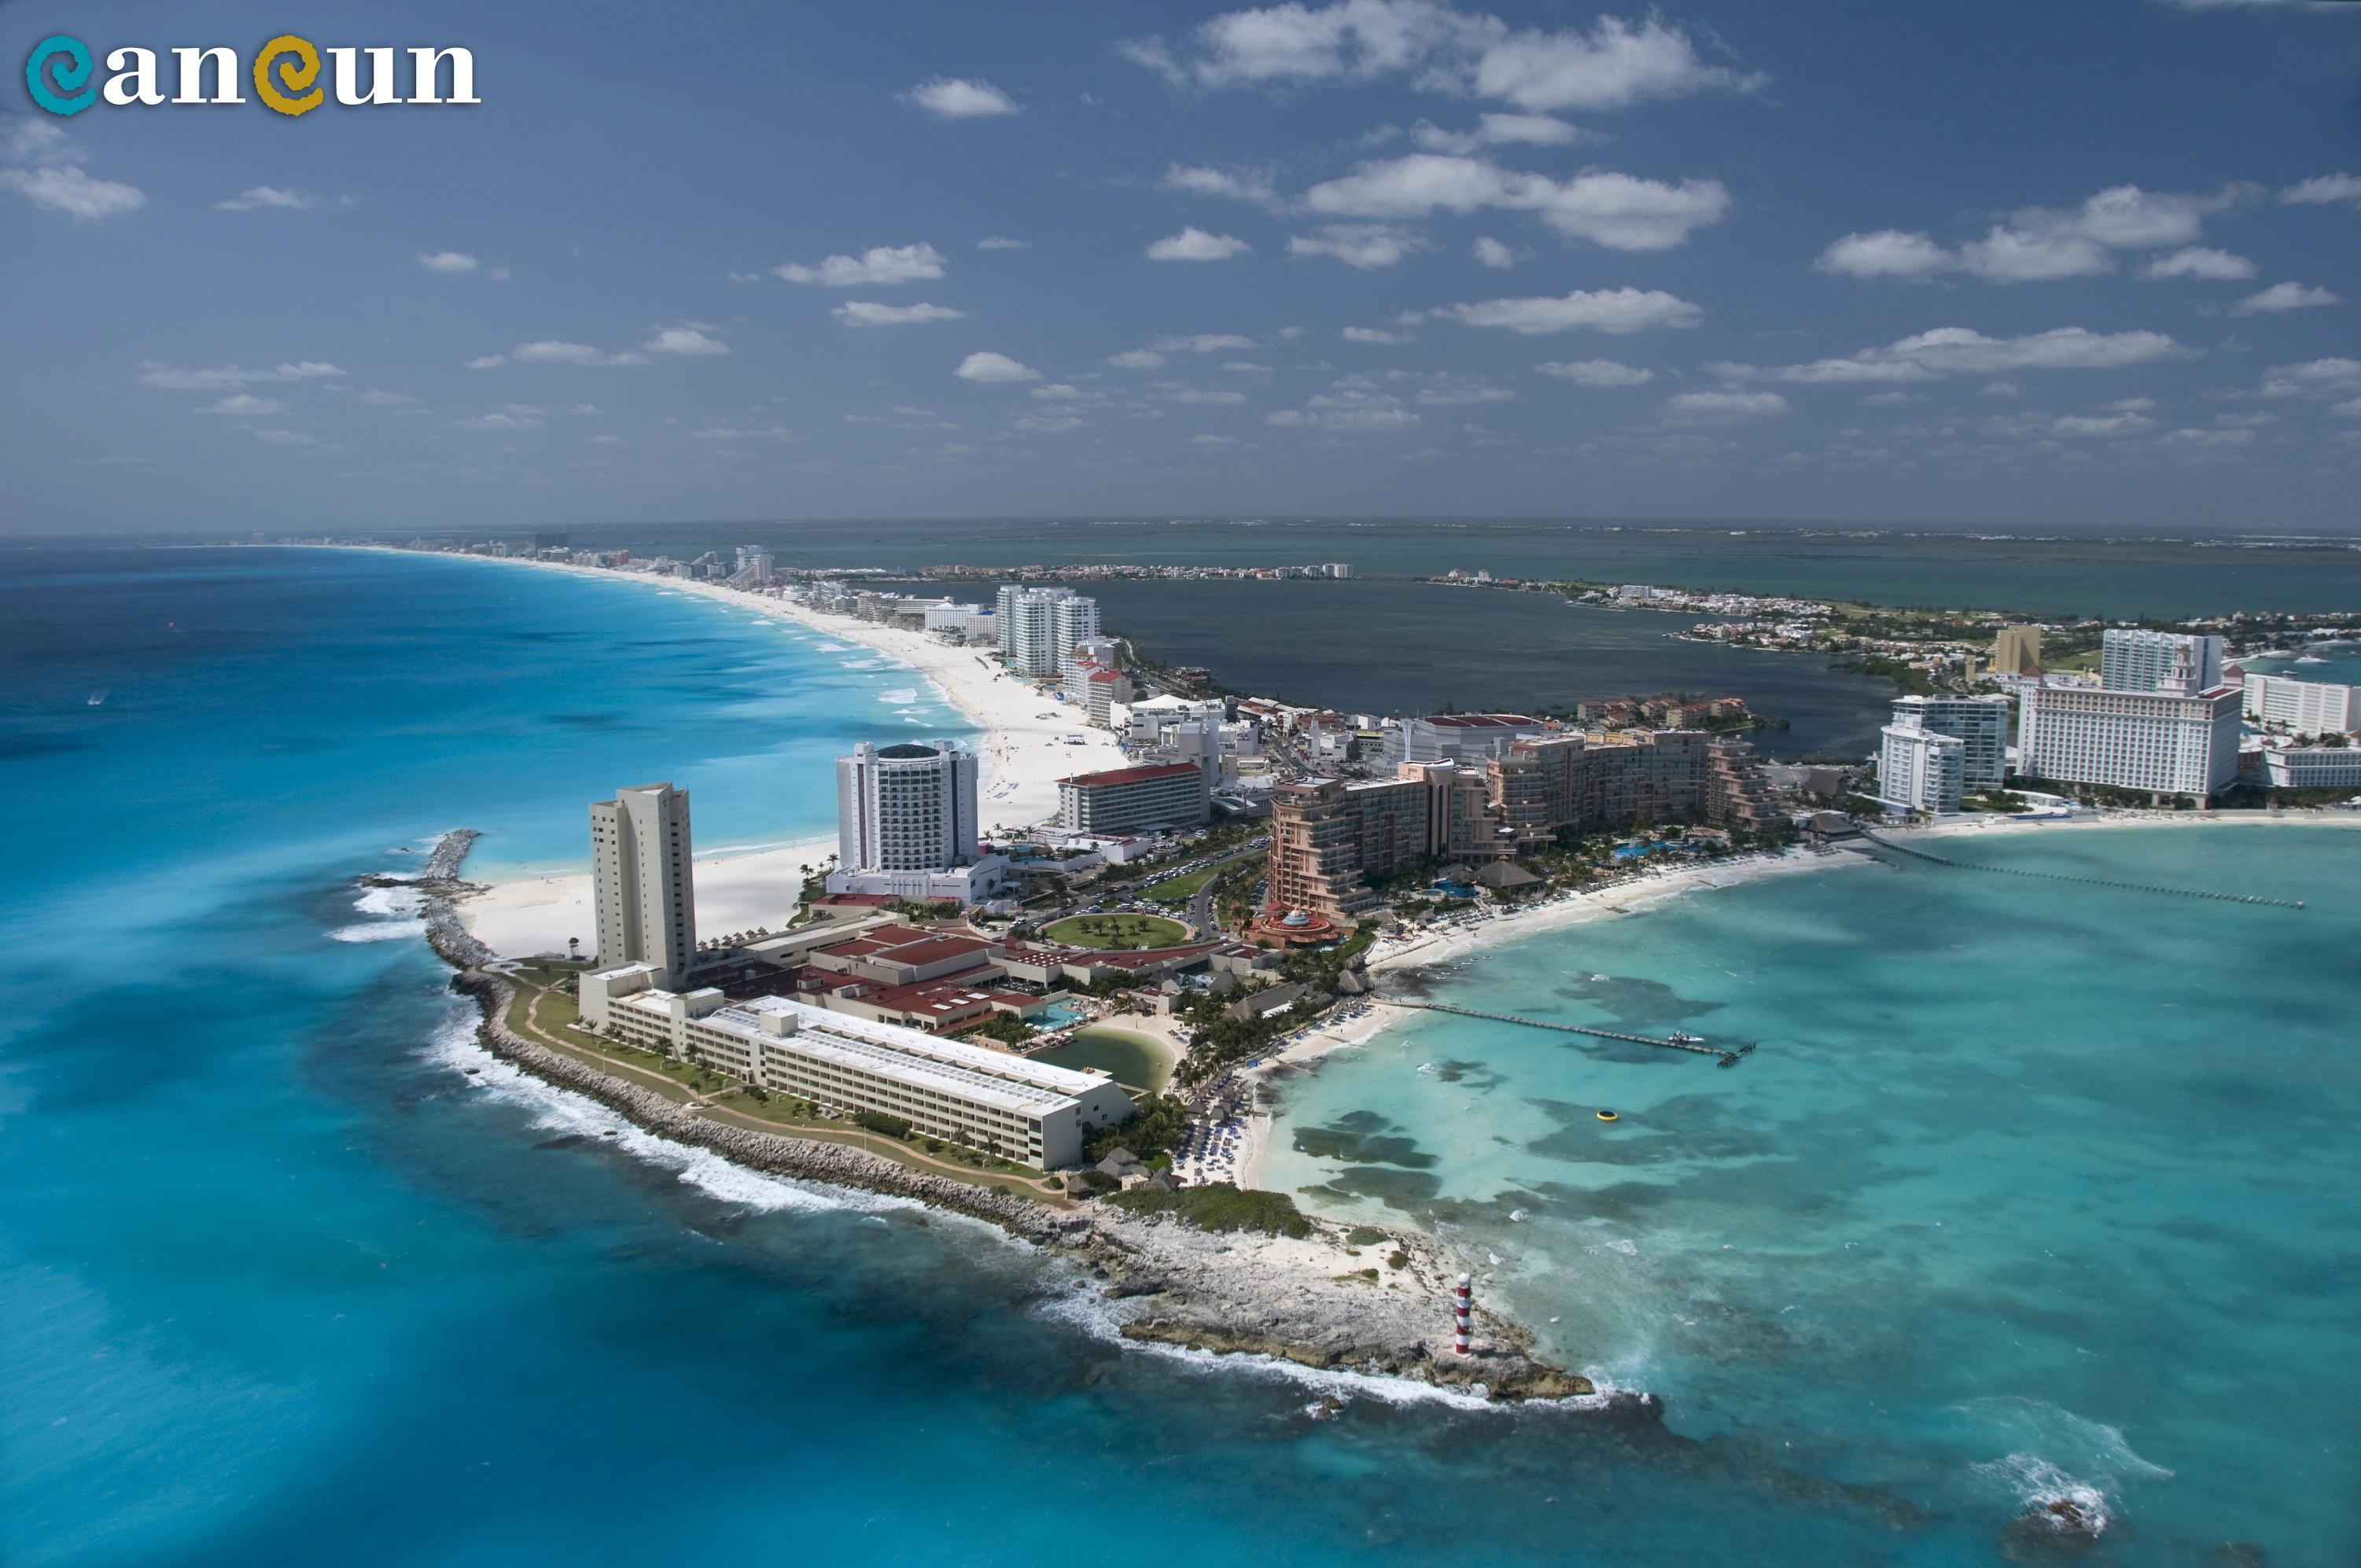 yucatan peninsula, safest region in mexico (canadian and us